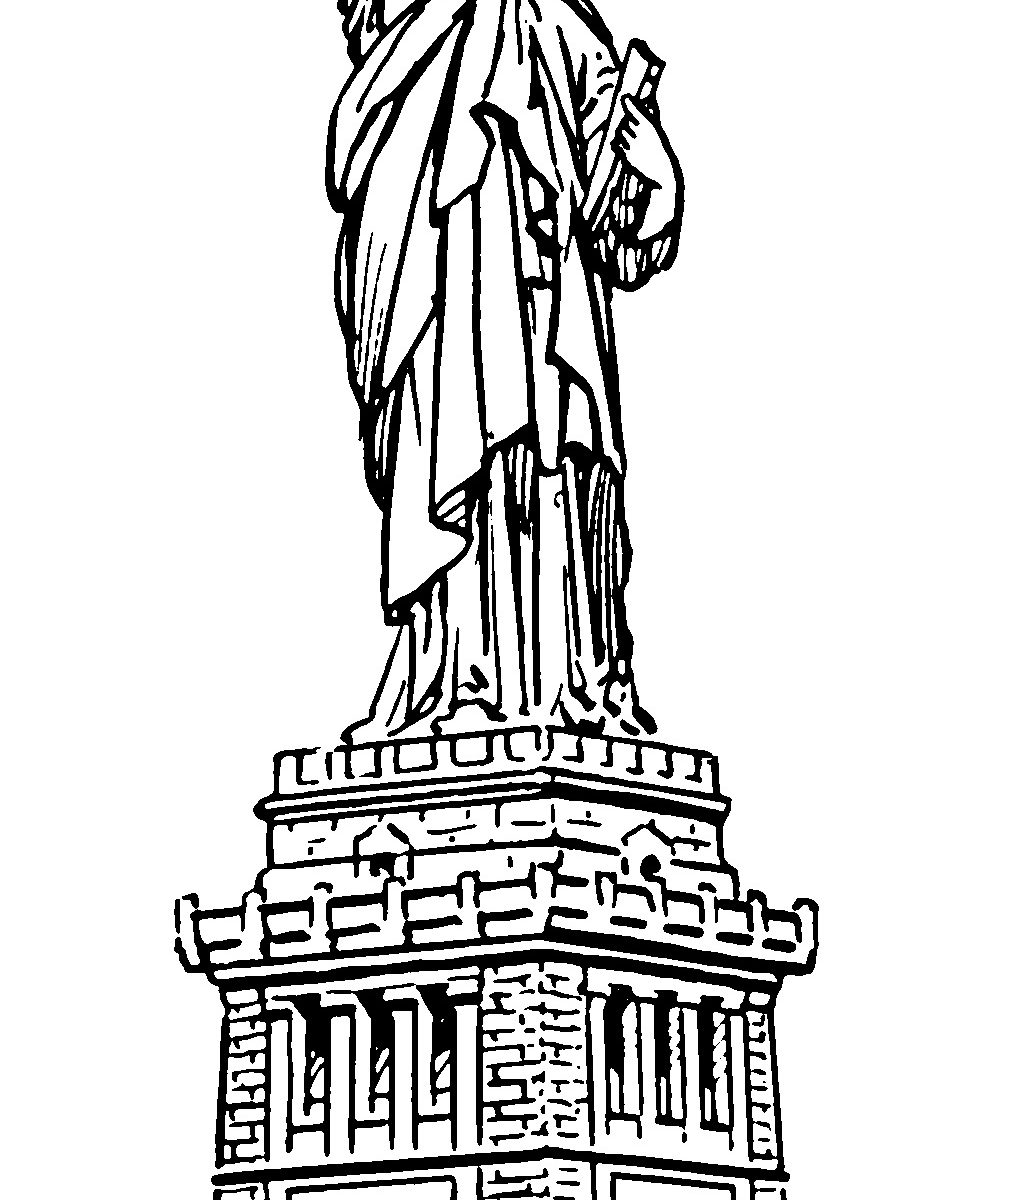 statue of liberty drawings liberty statue drawing at getdrawings free download liberty drawings statue of